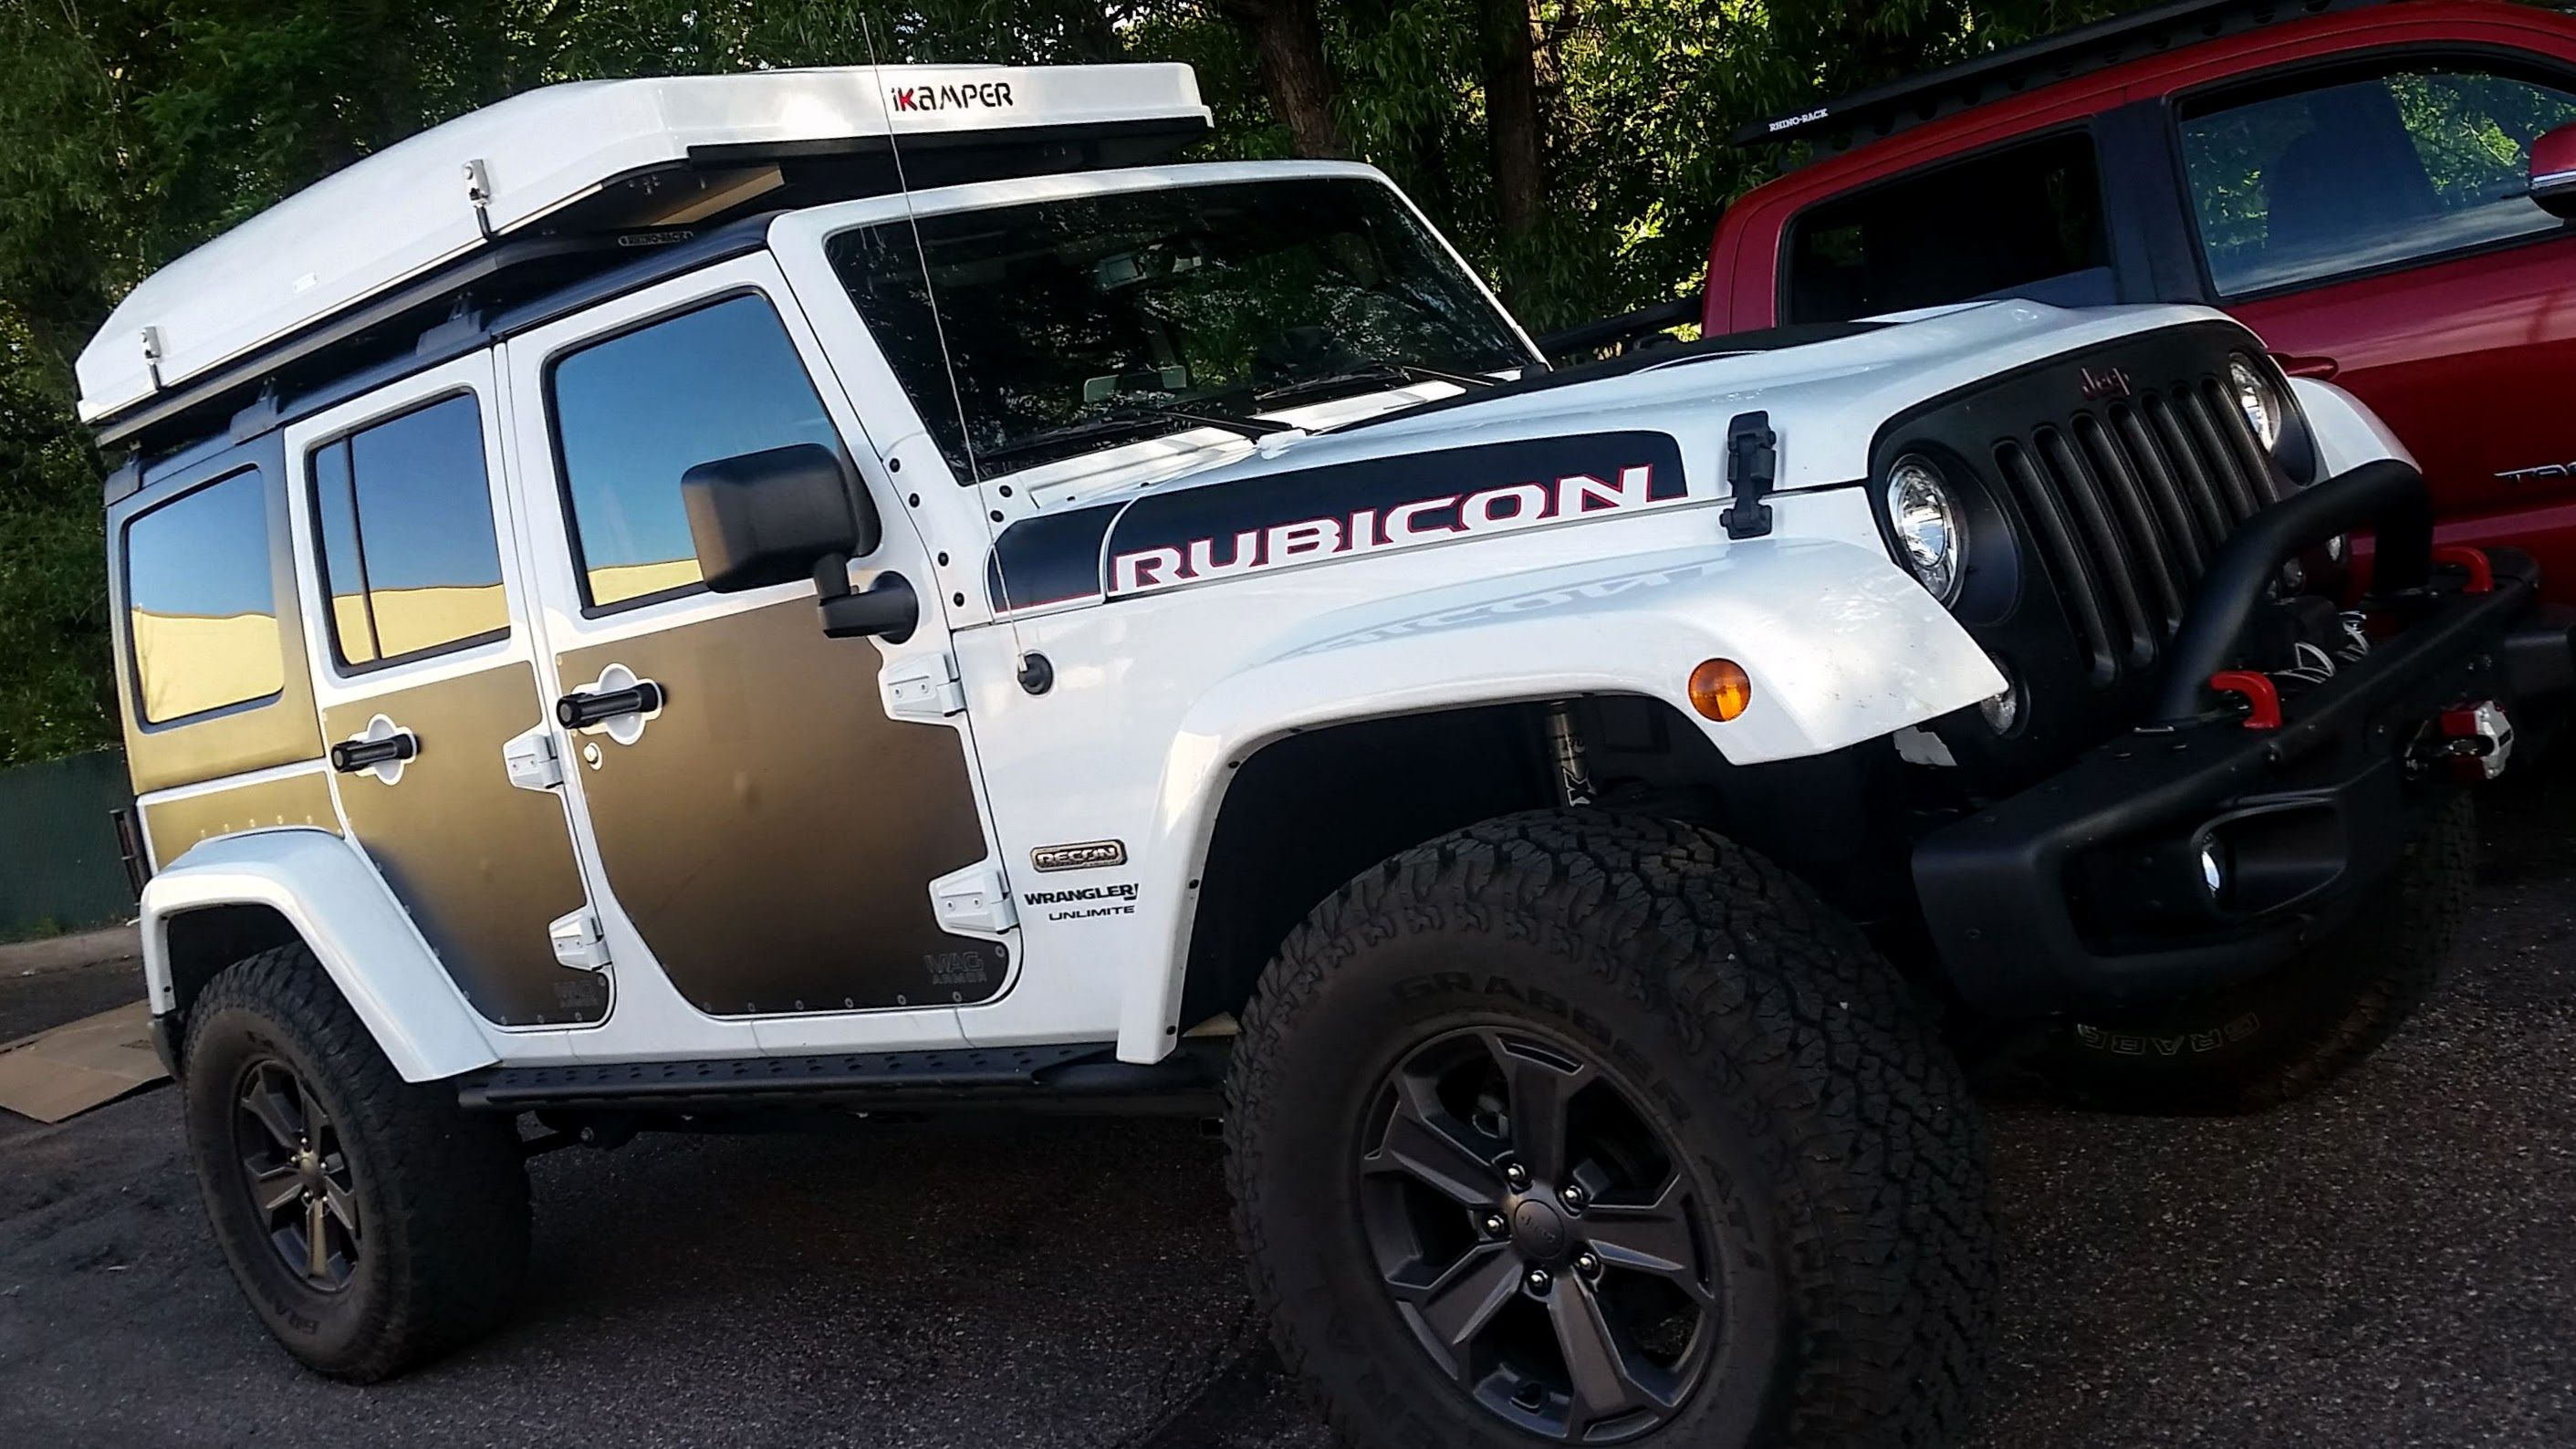 Jeep Jku Rubicon Recon Edition With White Ikamper Skycamp On Rhino